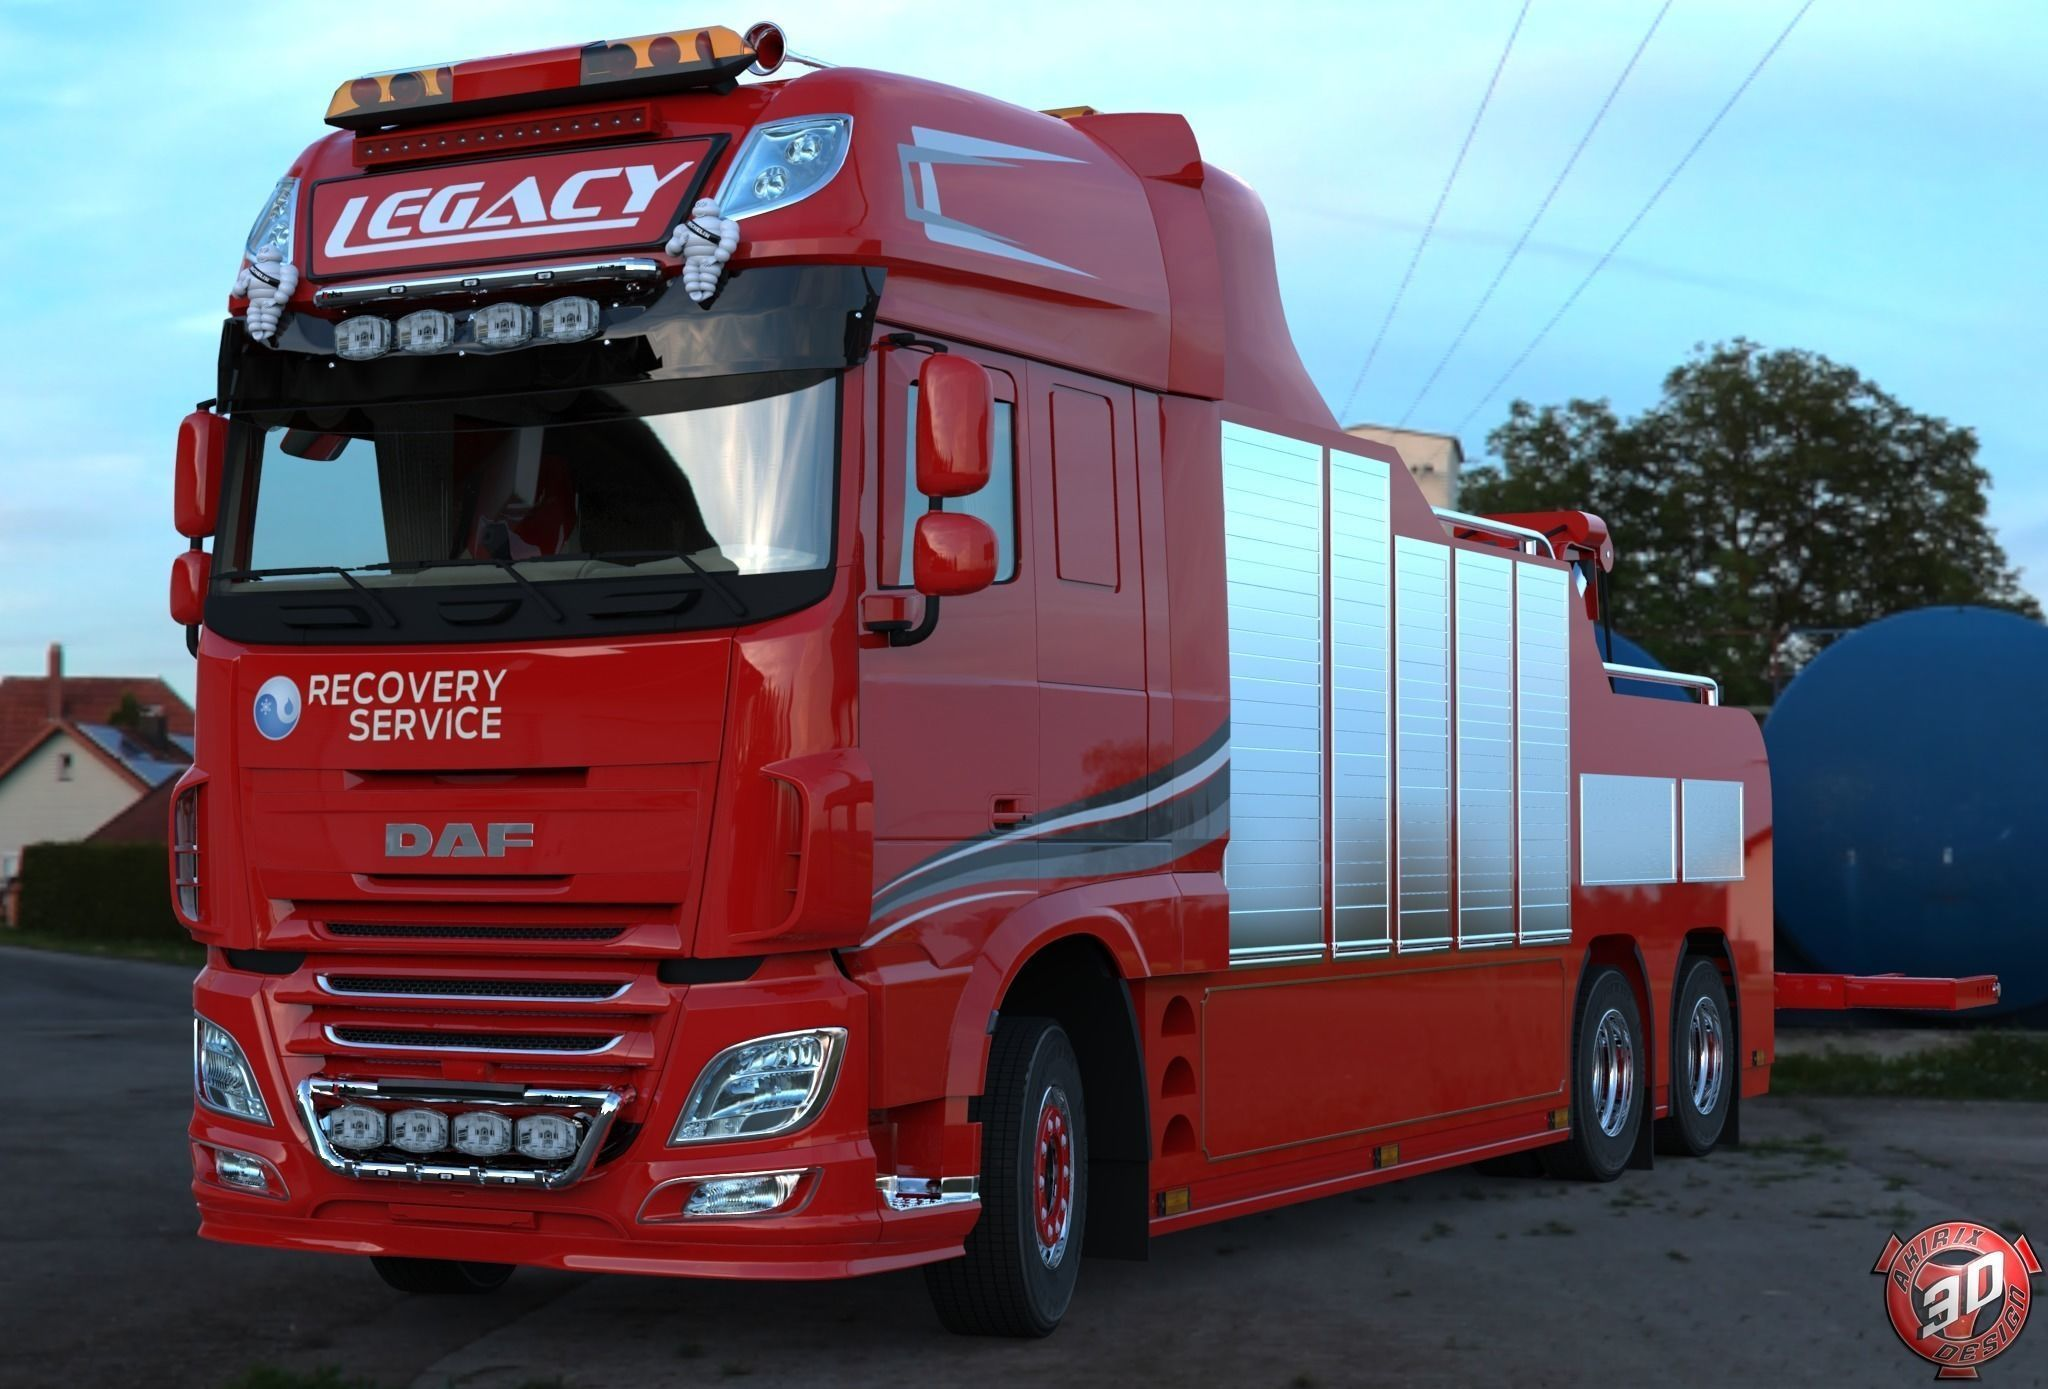 daf xf 106 510 recovery service truck bergings trucks. Black Bedroom Furniture Sets. Home Design Ideas